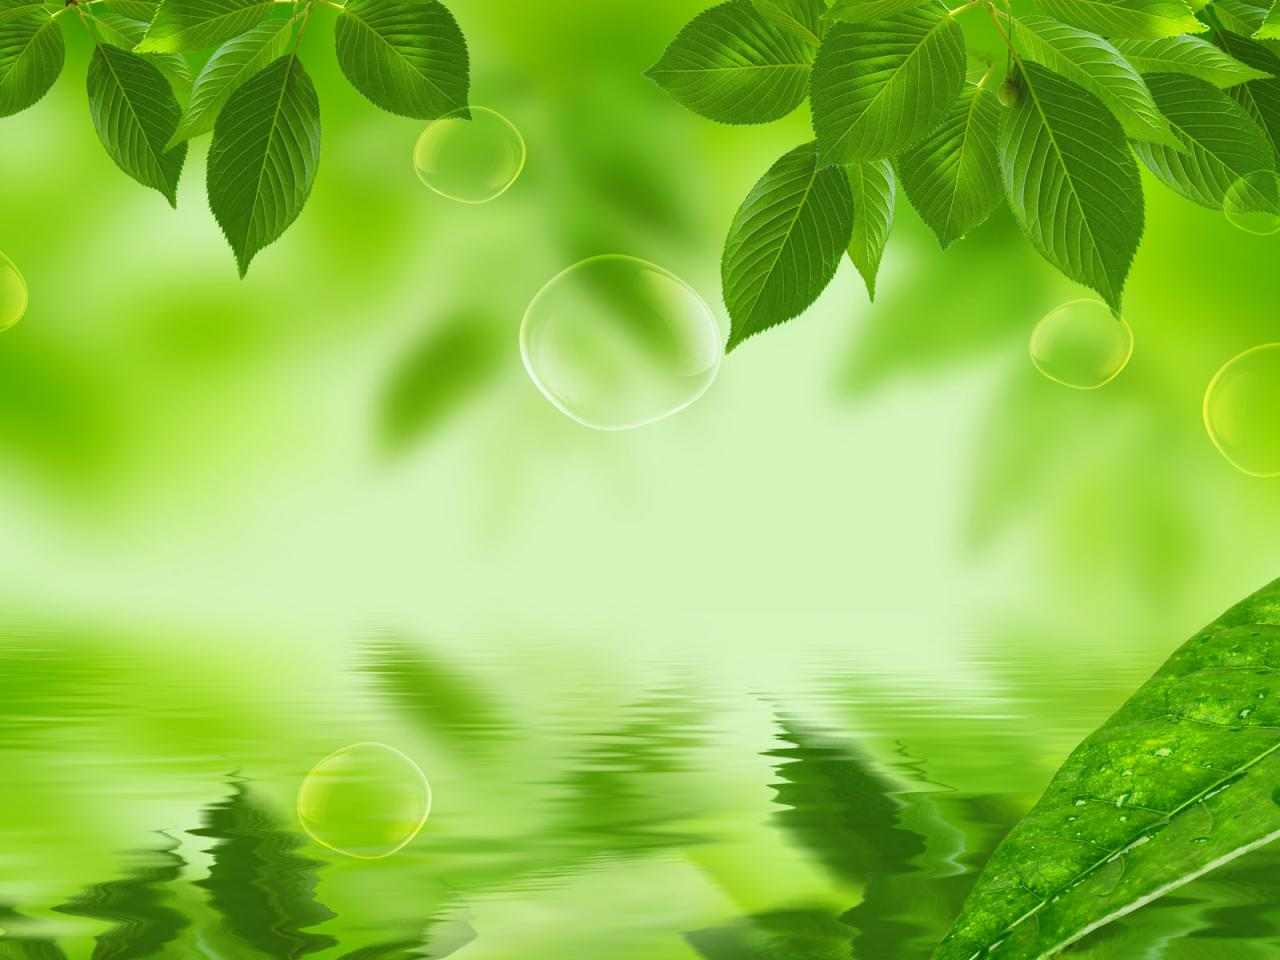 Fresh and natural green leaf wallpaper image 1280x960 hd wallpaper for desktop download,background image,wallpaper and Online Stock Photo Images